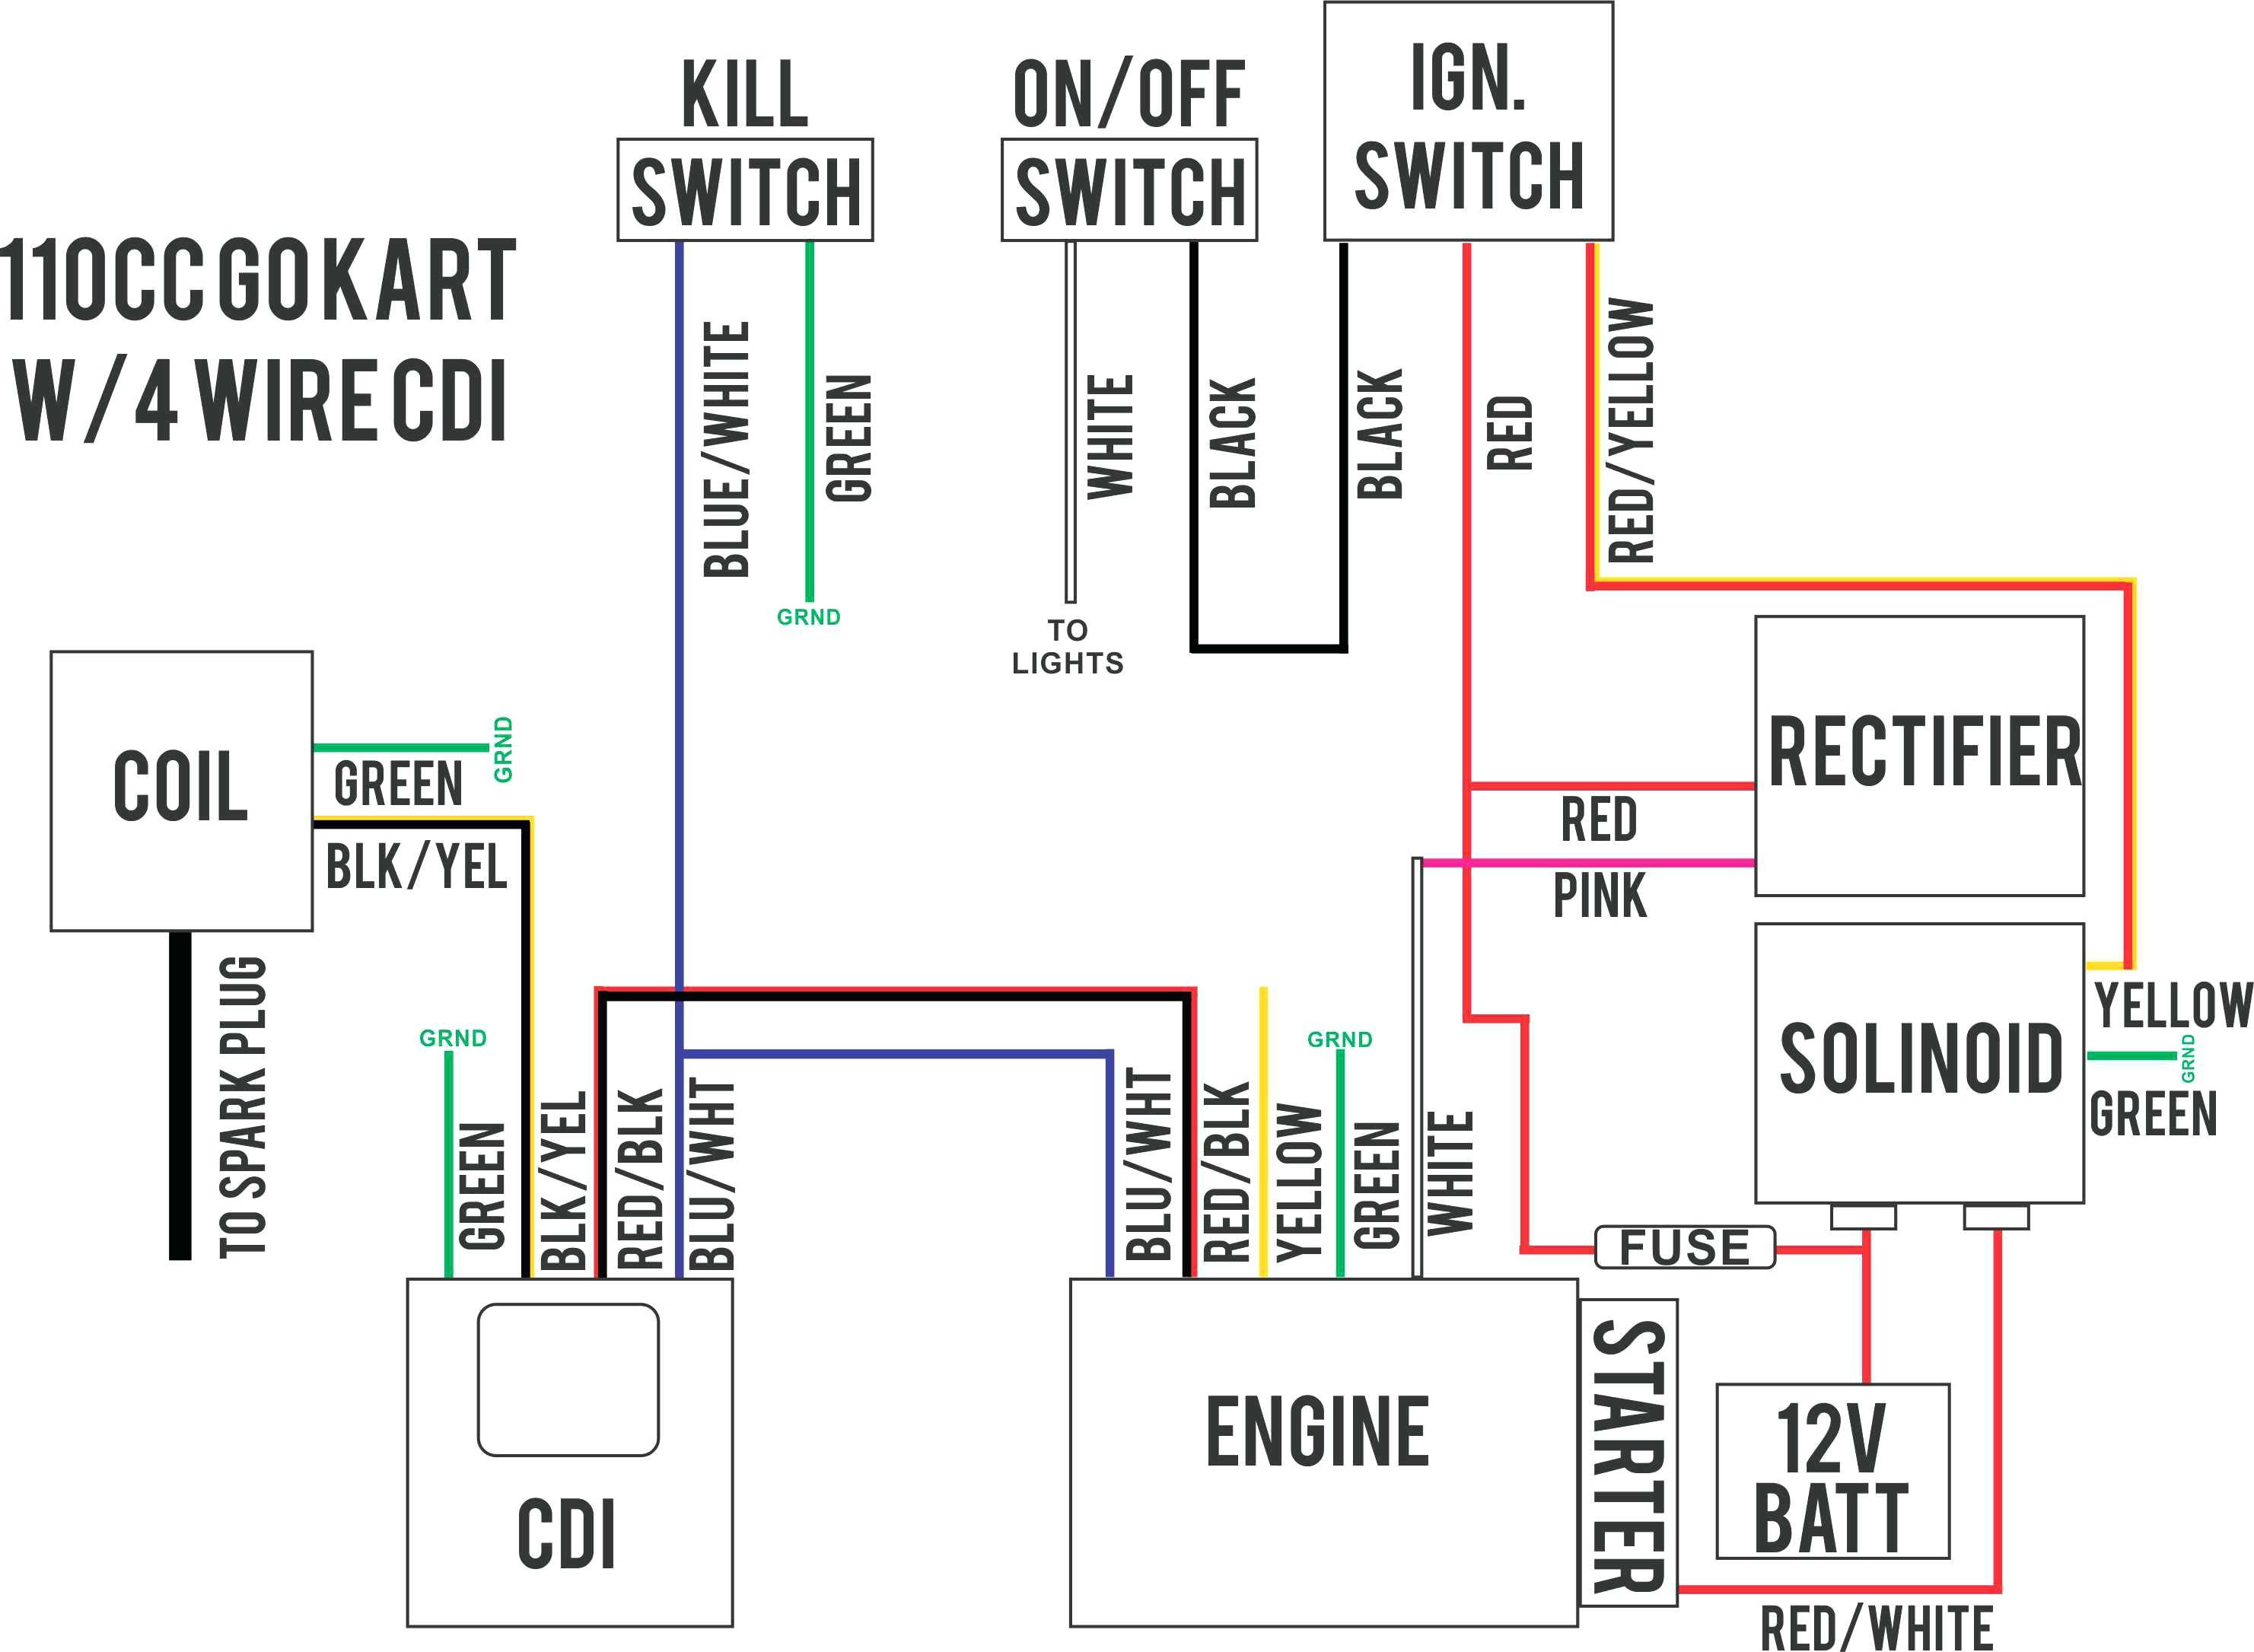 Fireplace Wiring Diagram Micro Switch Get Free Image About Spdt Amico Library